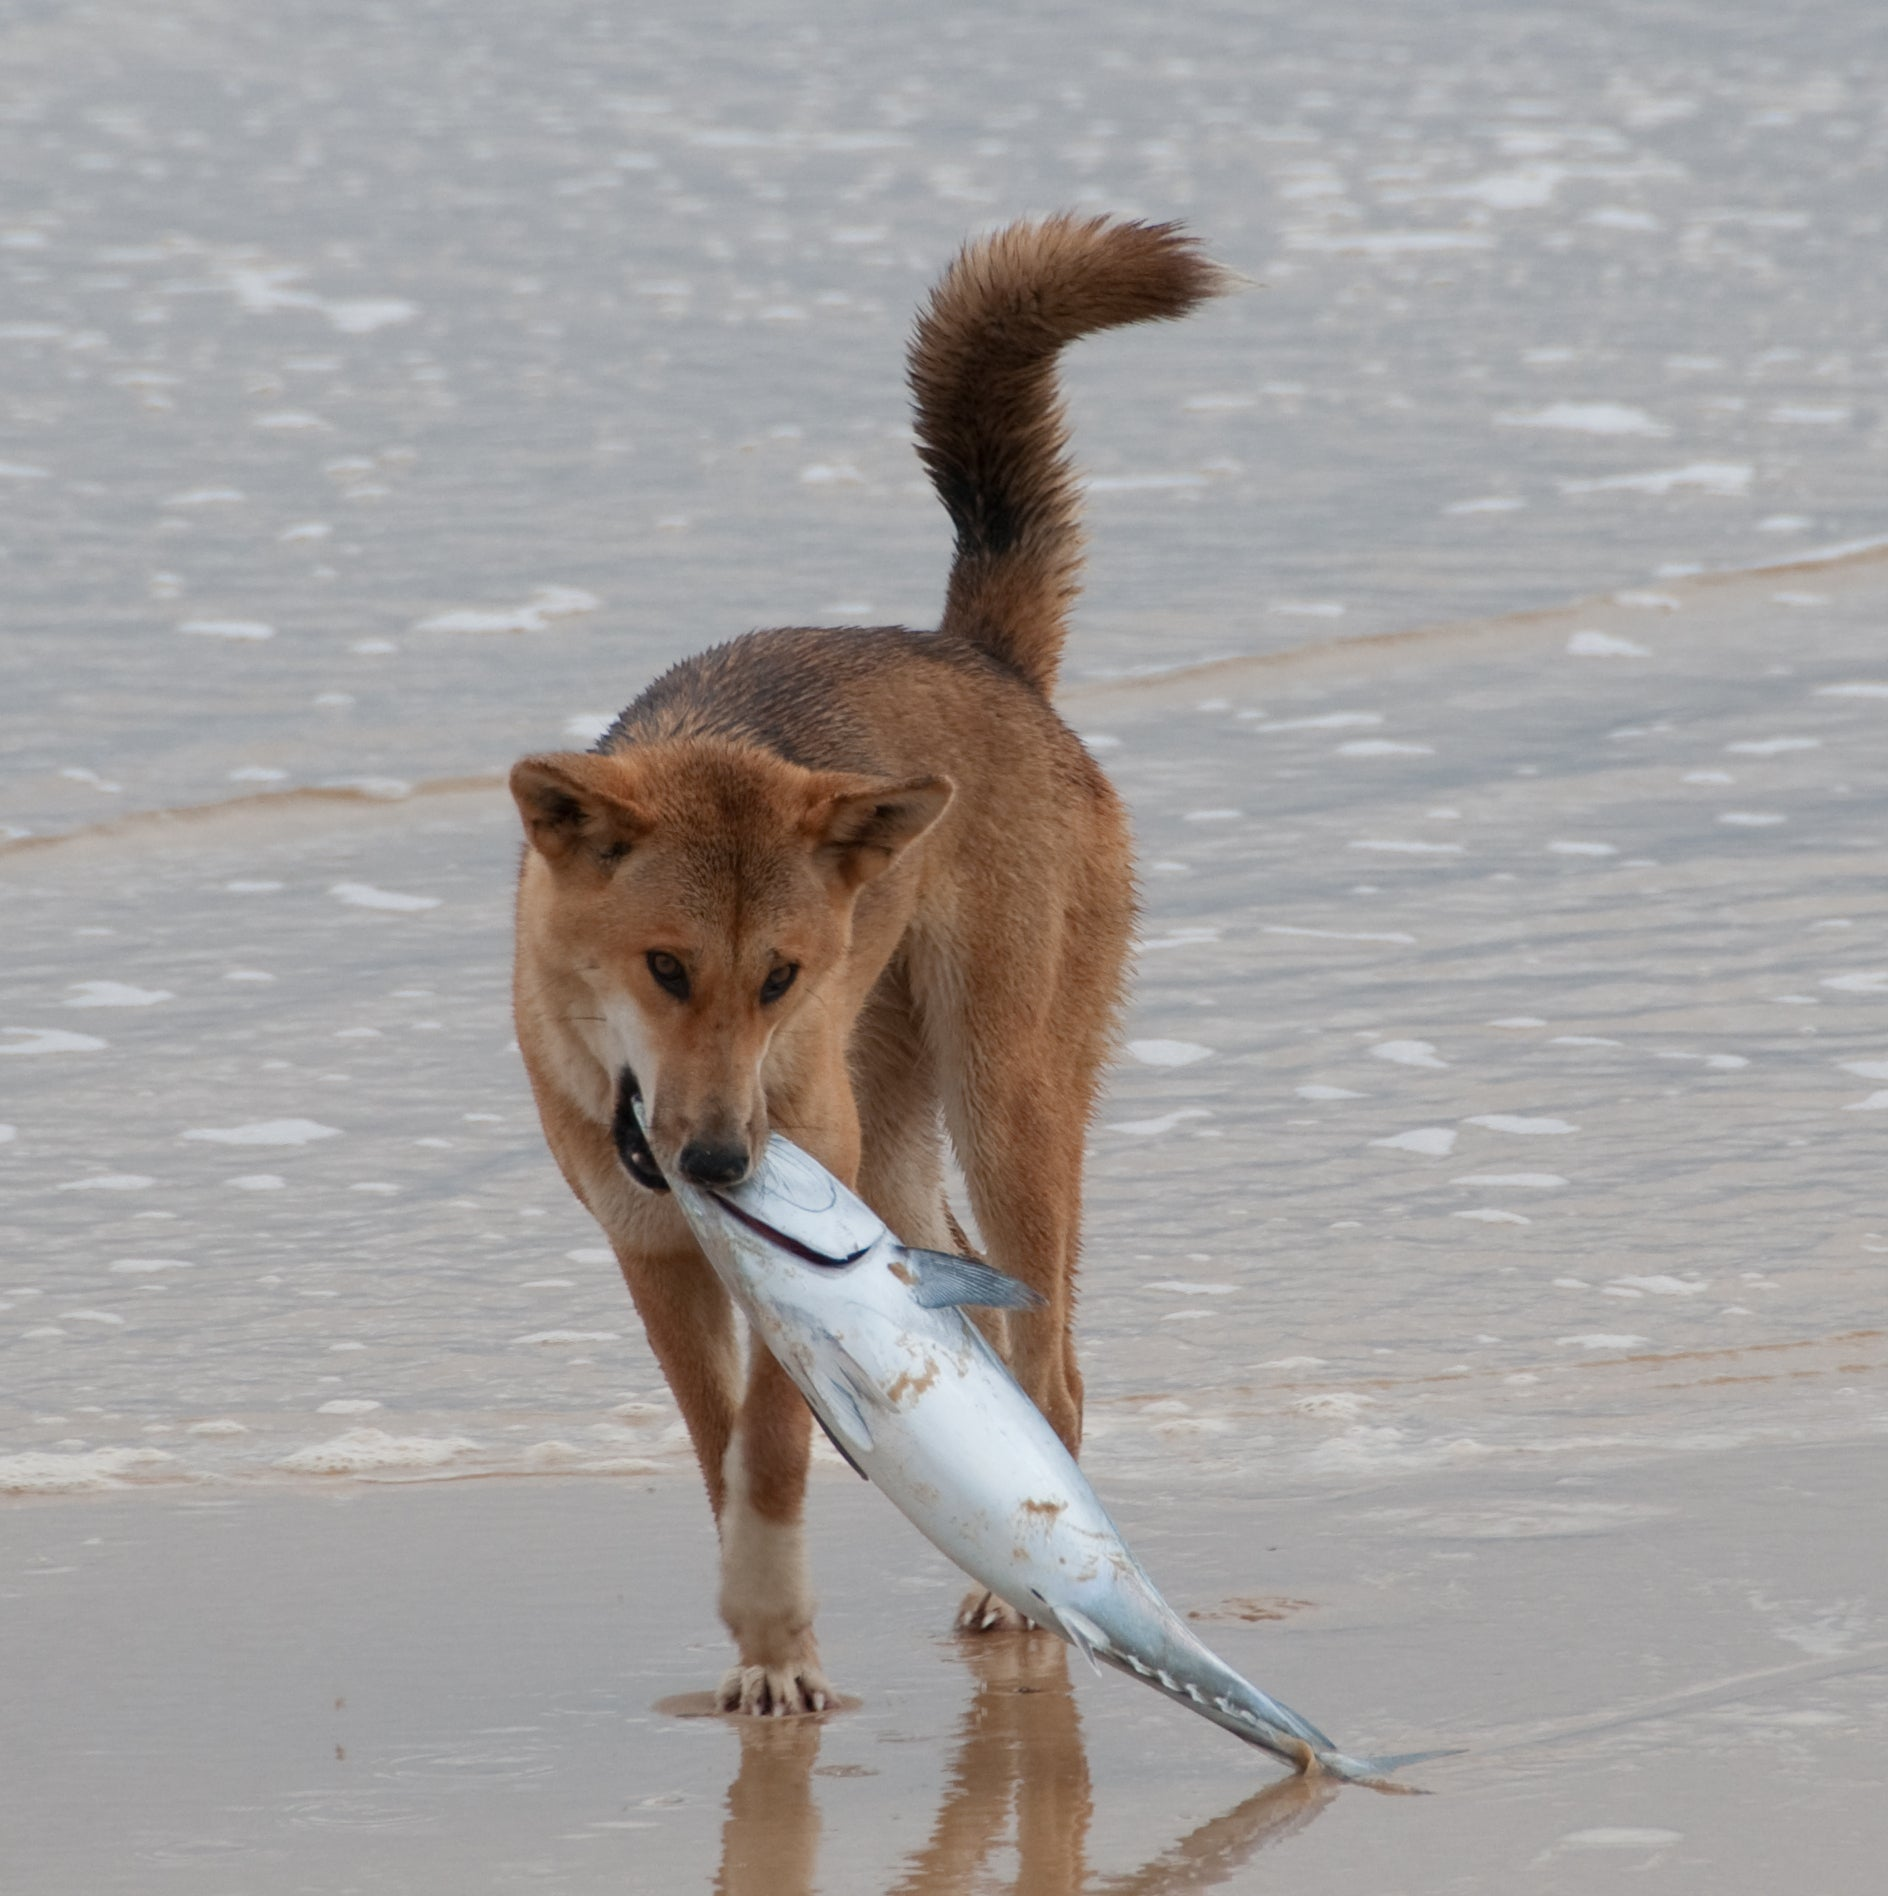 raw fish unhealthy for dogs